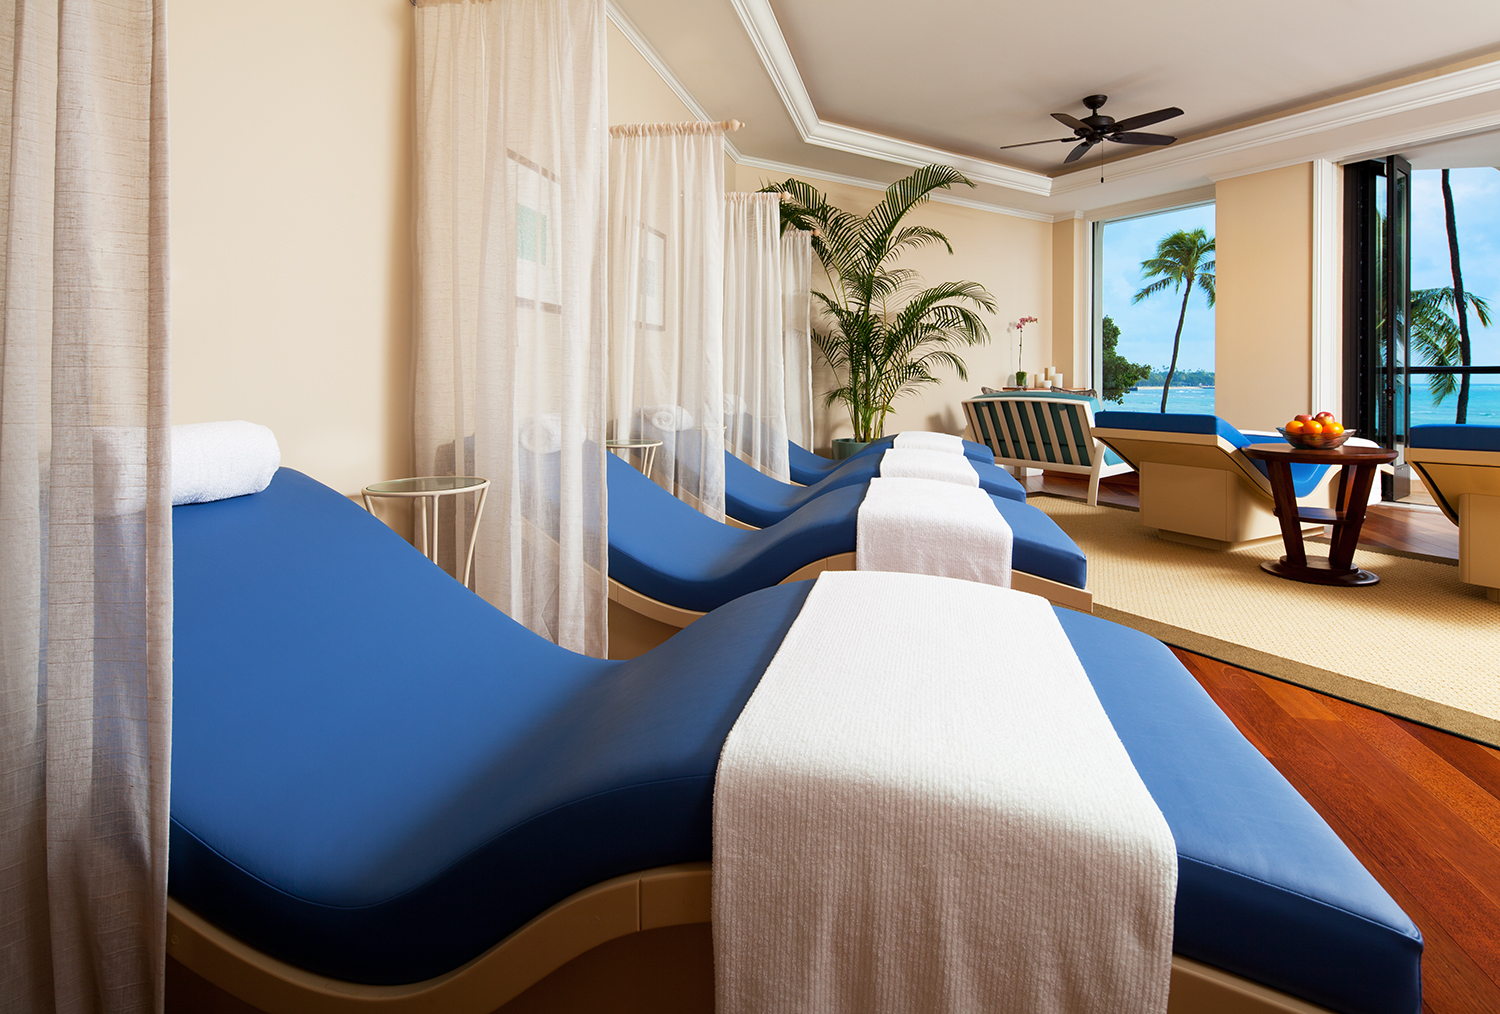 Guests can decompress in separate men's and women's relaxation lounges.